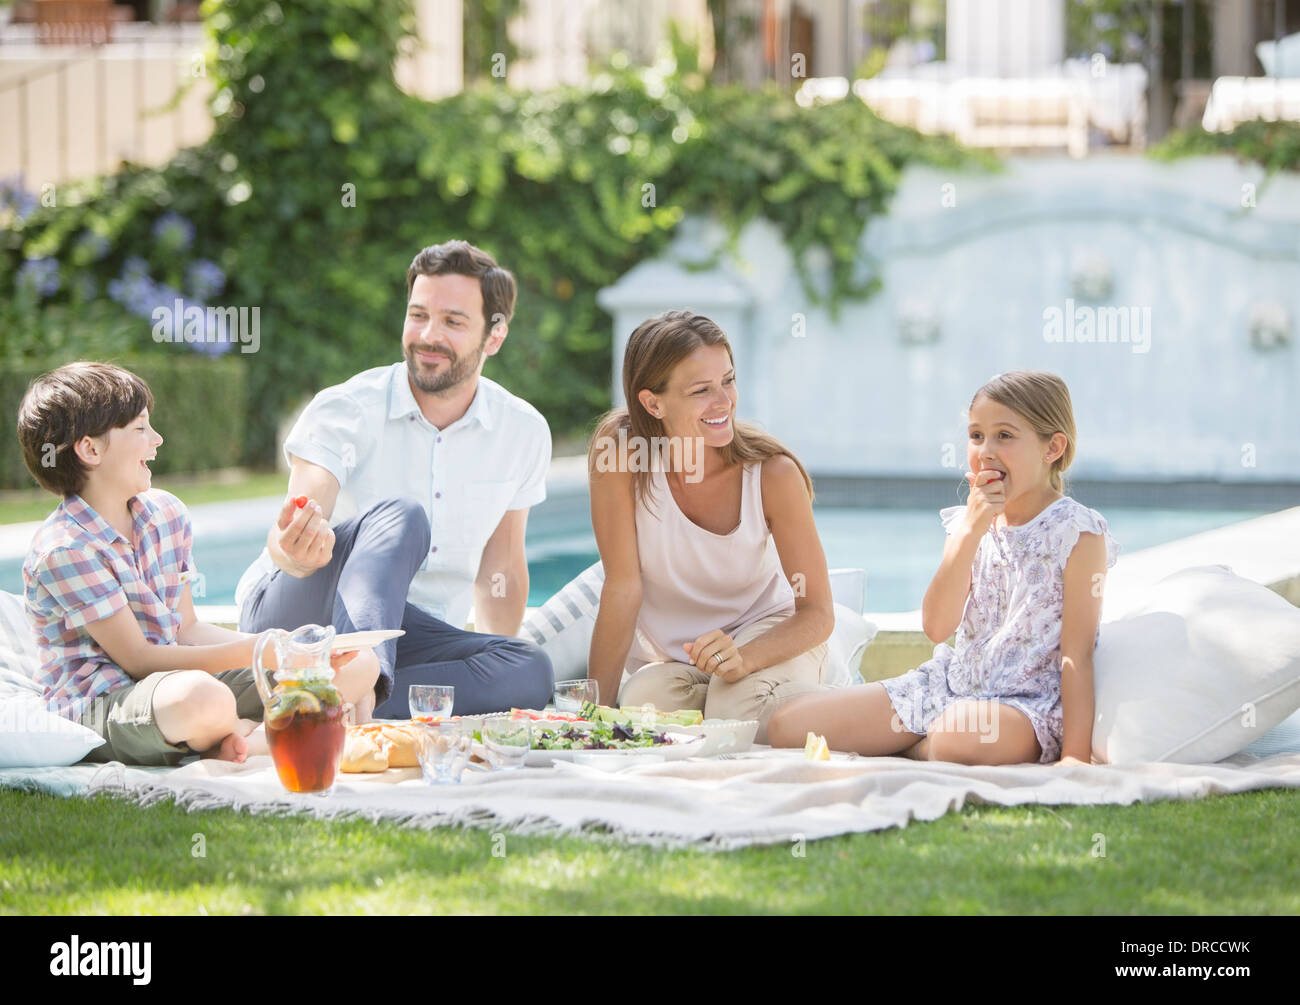 Family enjoying picnic in grass - Stock Image